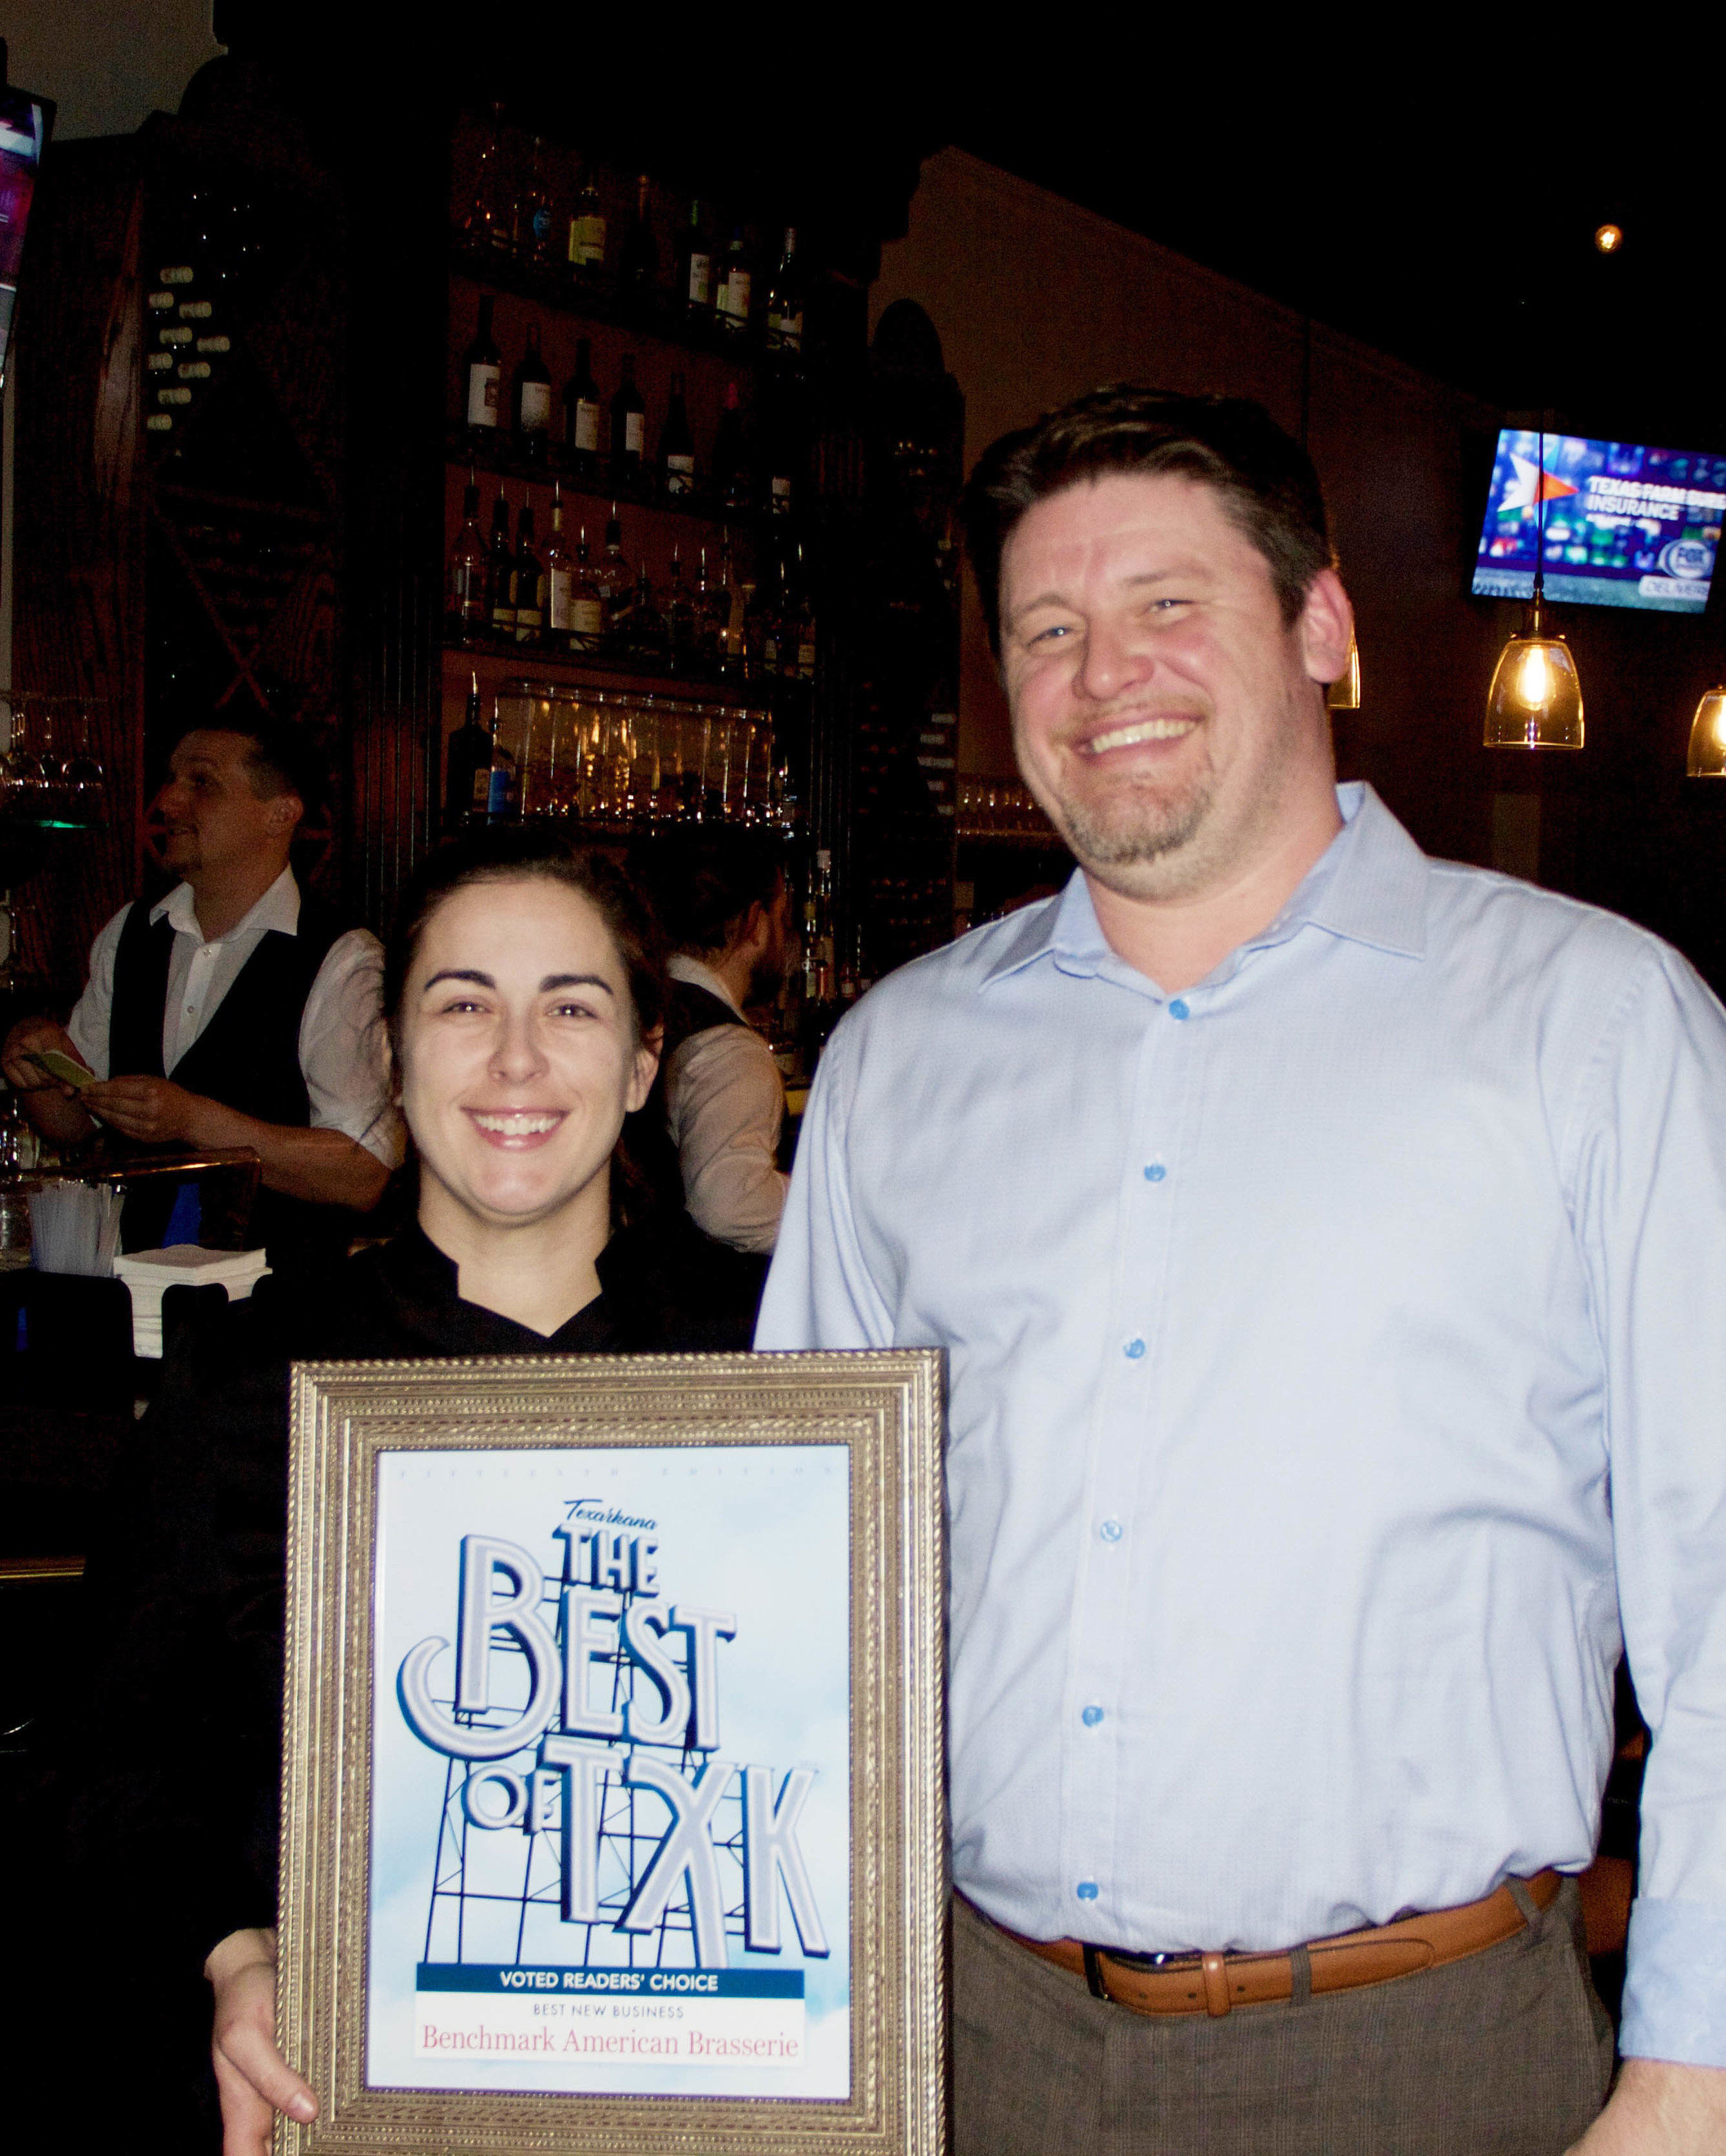 BENCHMARK AMERICAN BRASSERIE – Chef Becky and Jason Williams